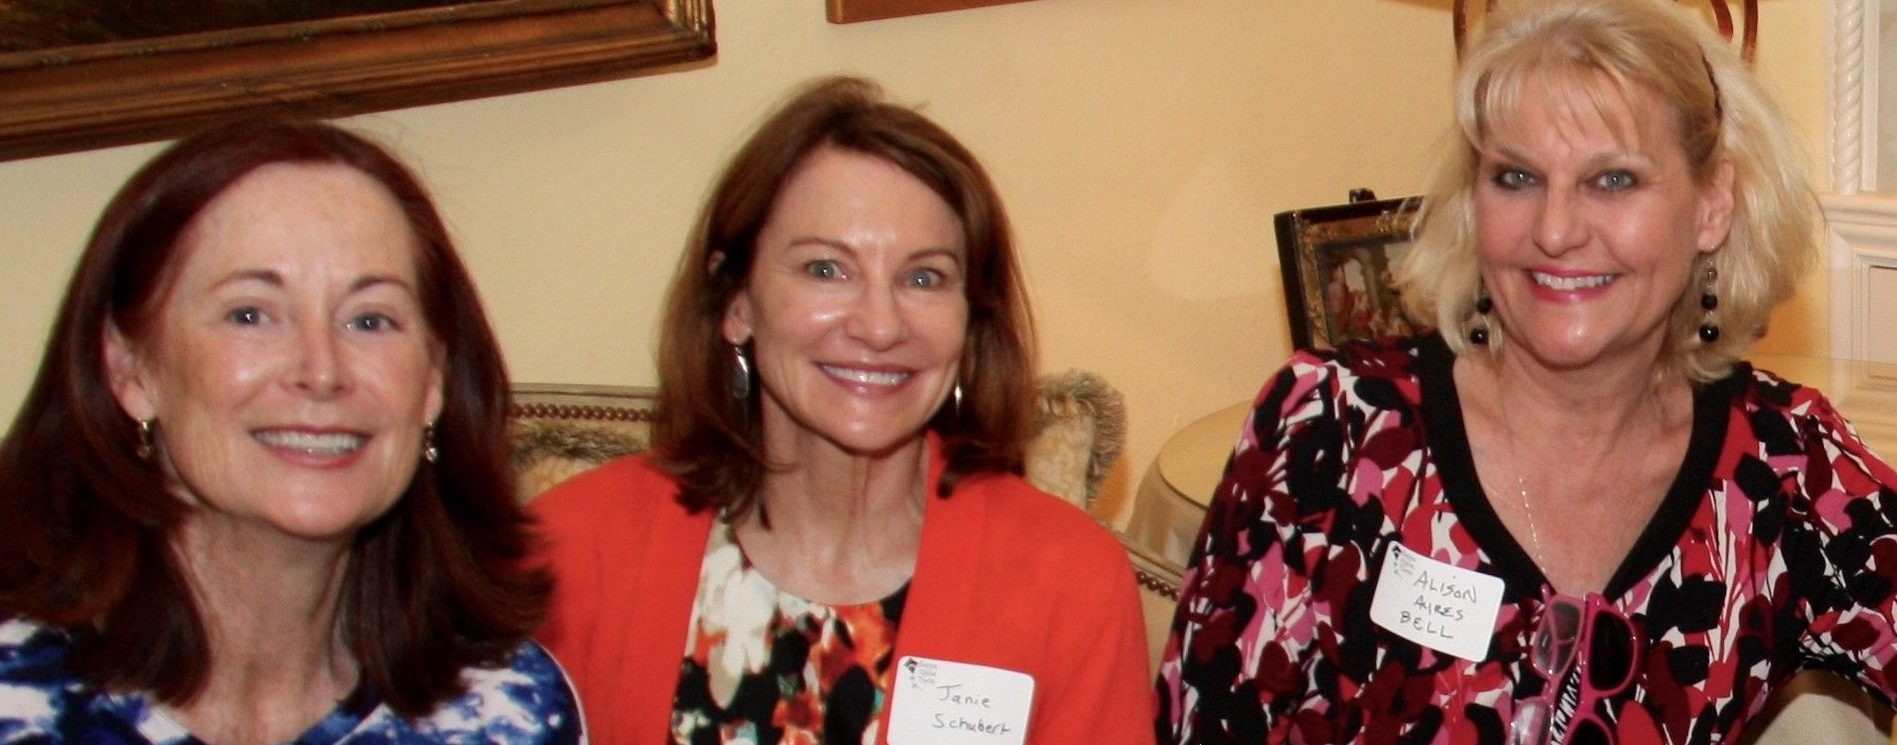 Ruth Hawk, JanieSchubert, and Alison Ayres Bell celebrate Theta's success at the Philanthropic Coffee in March.